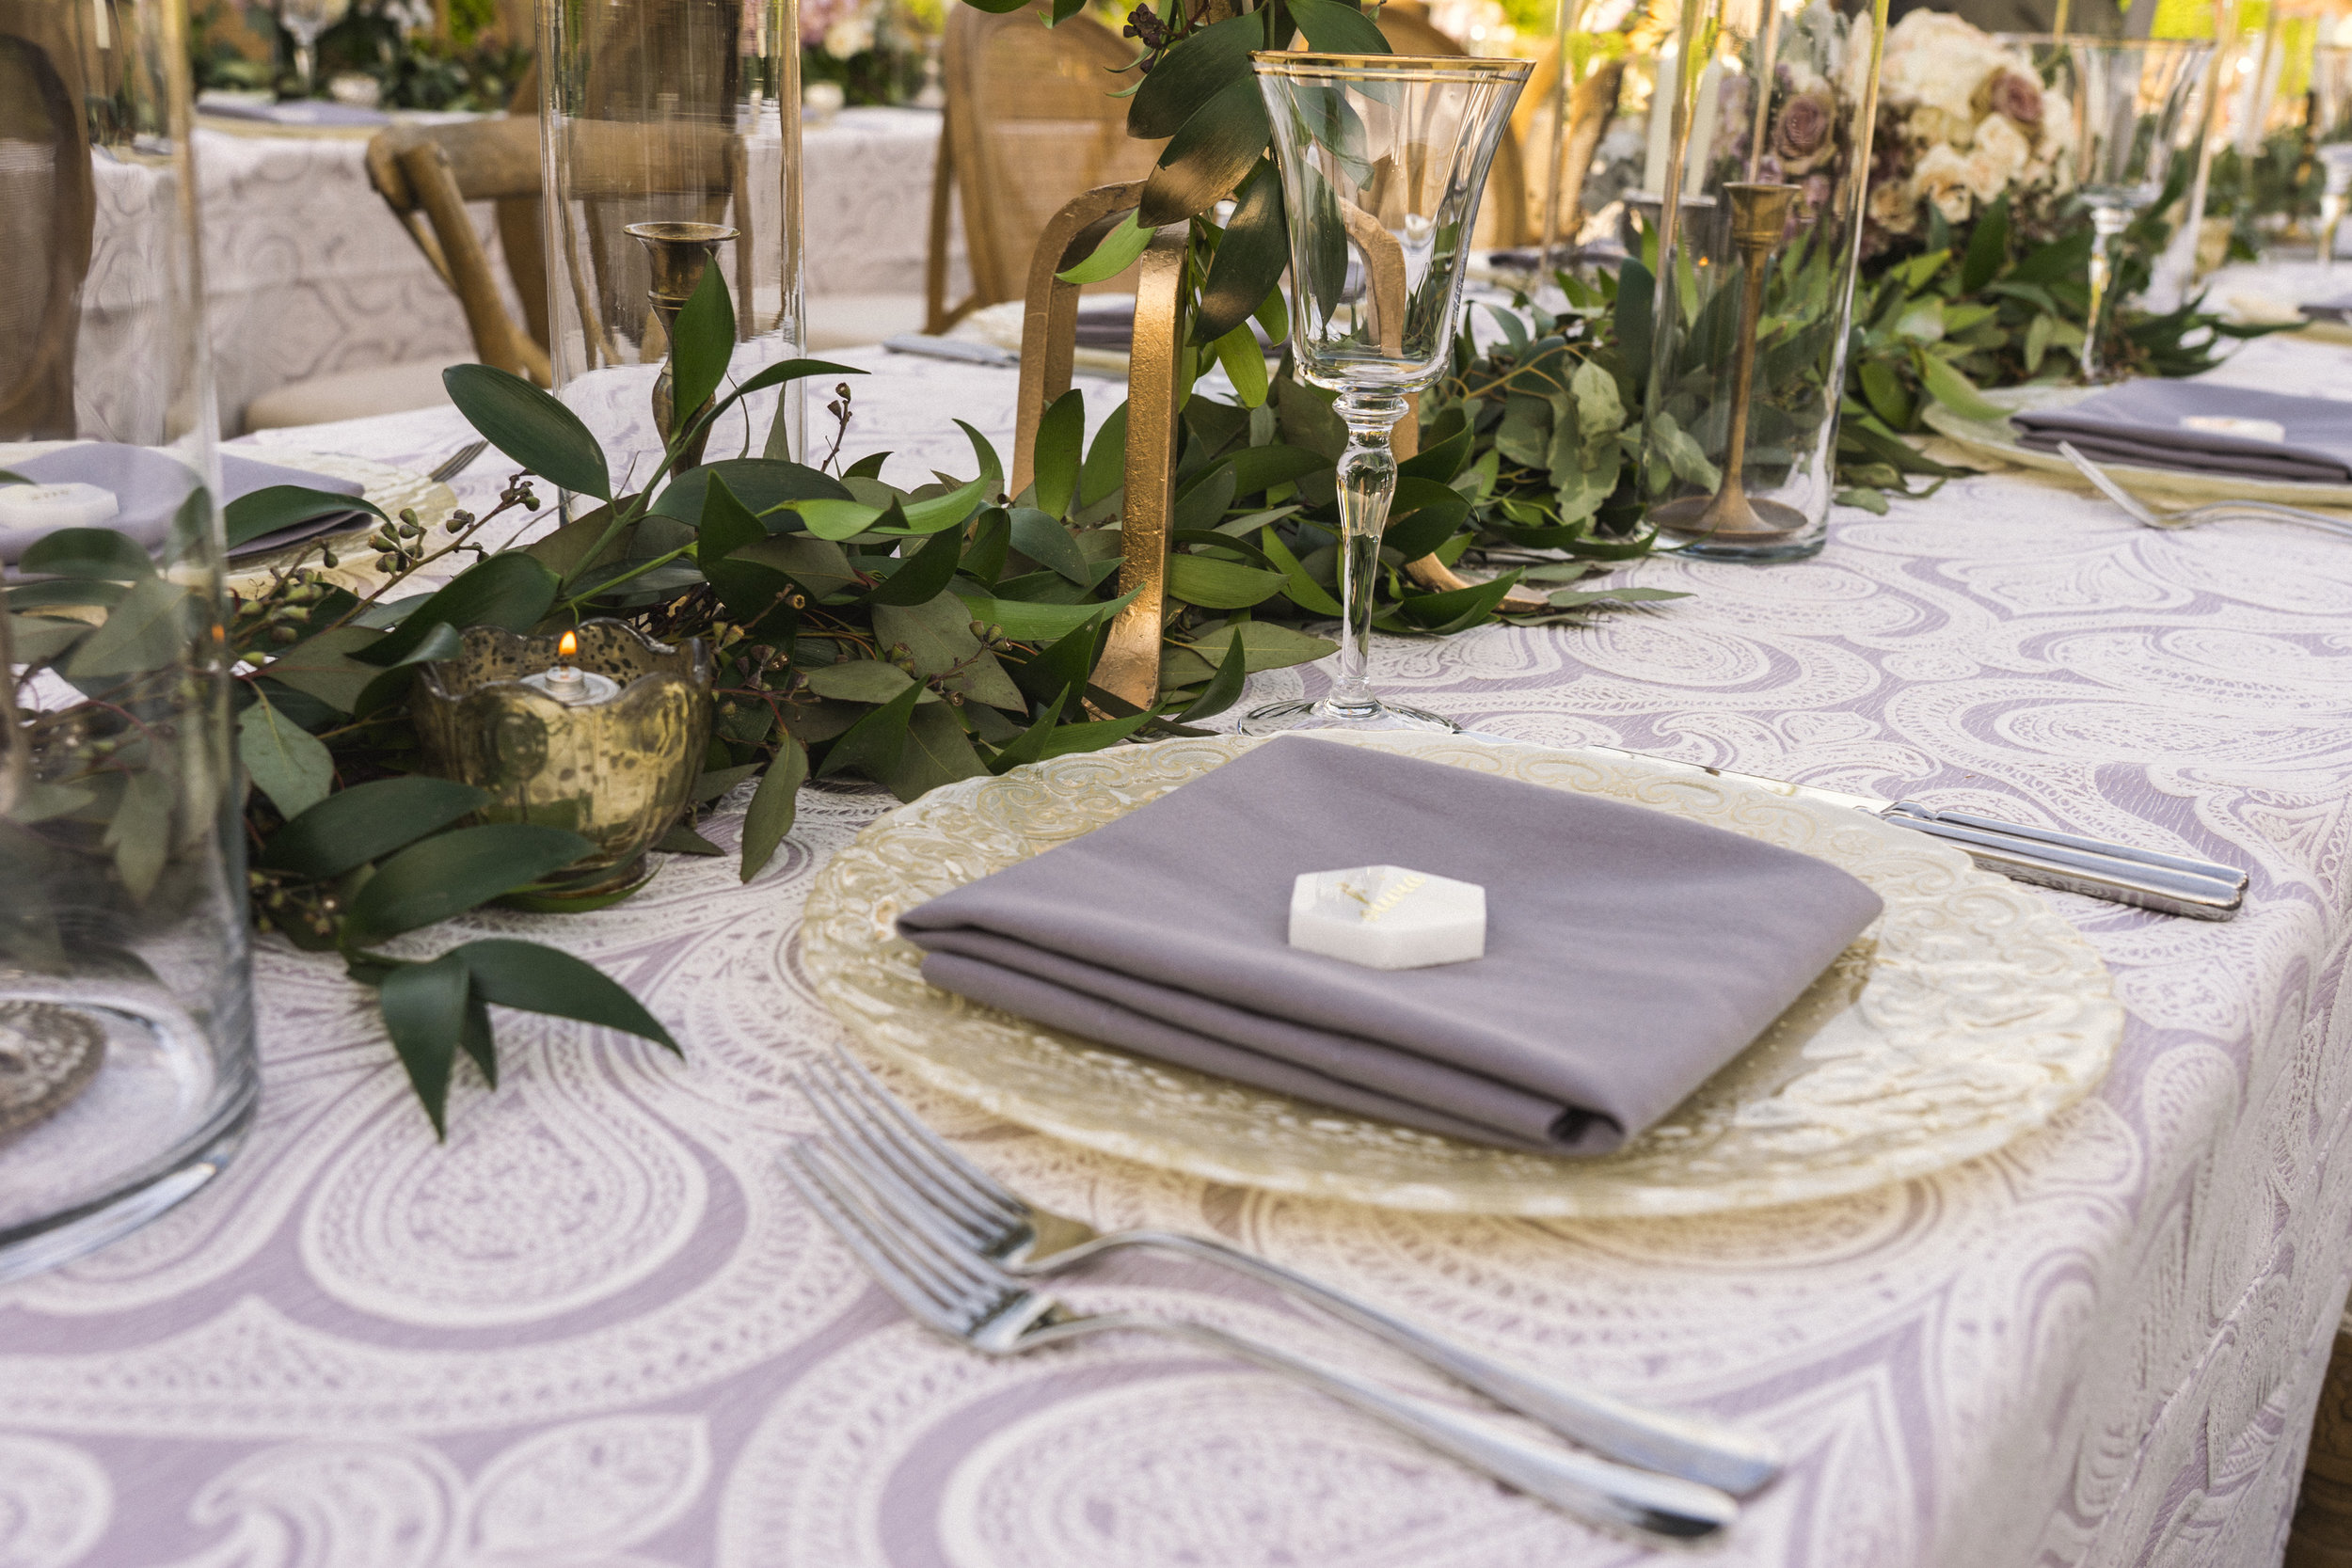 9 place setting dinner table purple napkin candlelight dinner placecard tile Life Design Events photos by Keith and Melissa Photography.jpg